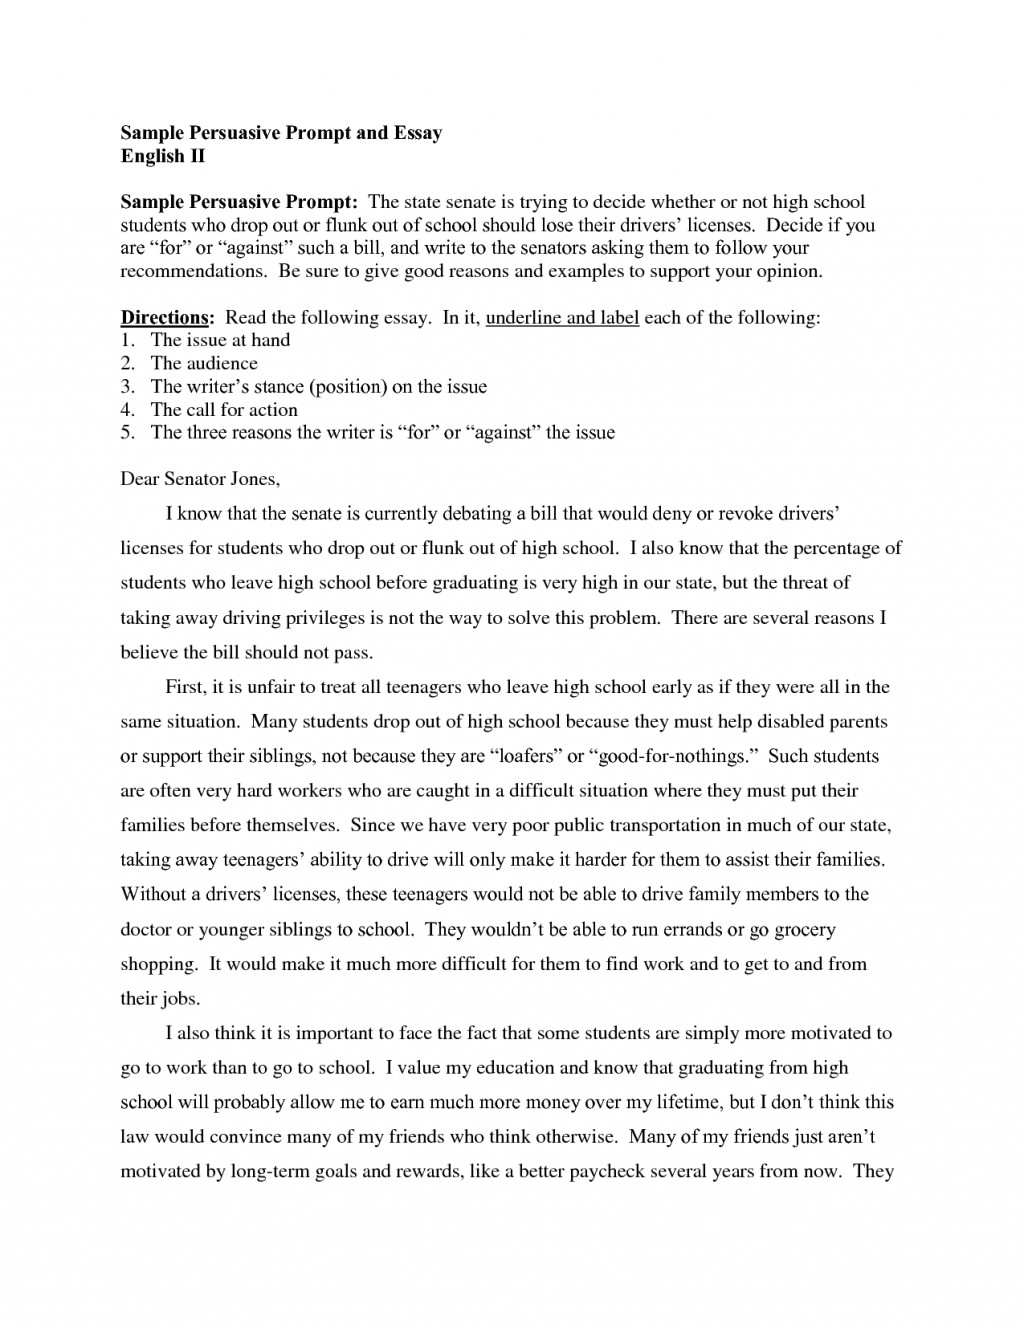 006 Persuasive Essay Topics For High School Sample Ideas Highschoolents Good Prompt Funny Easy Fun List Of Seniors Writing English Free Research Paper Best Students Large